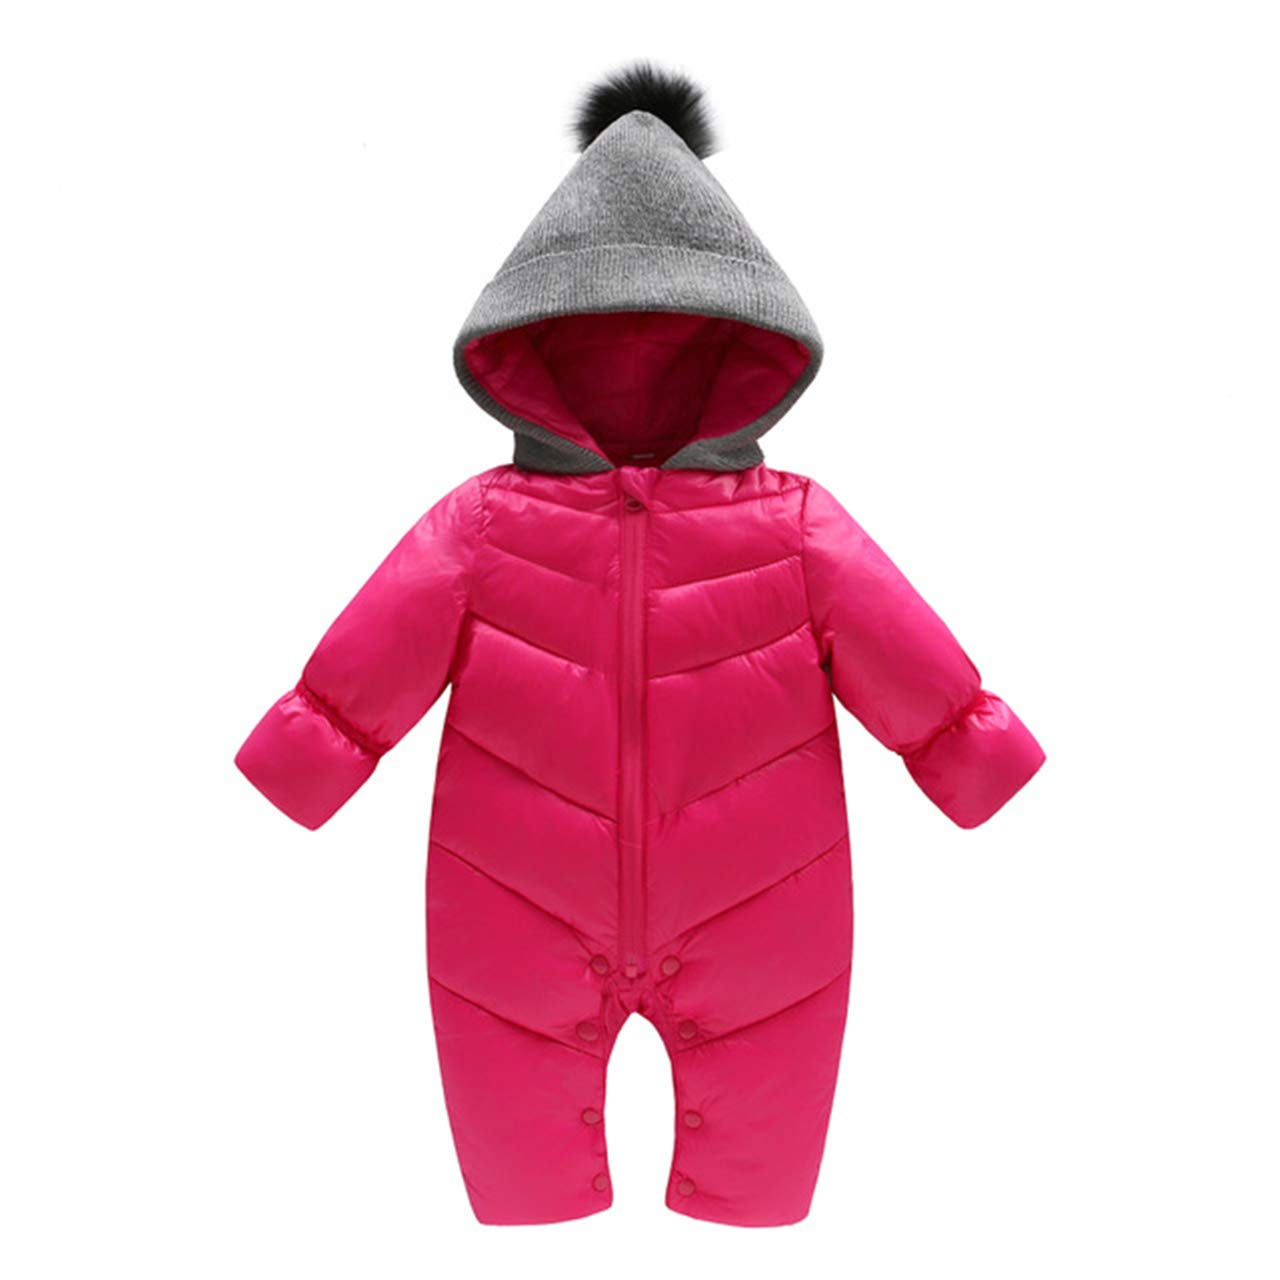 Beiduoxiong Baby Infant Boys Girl Winter Dwon Romper Hooded Snowsuit Jumpsuit 0-18 Months